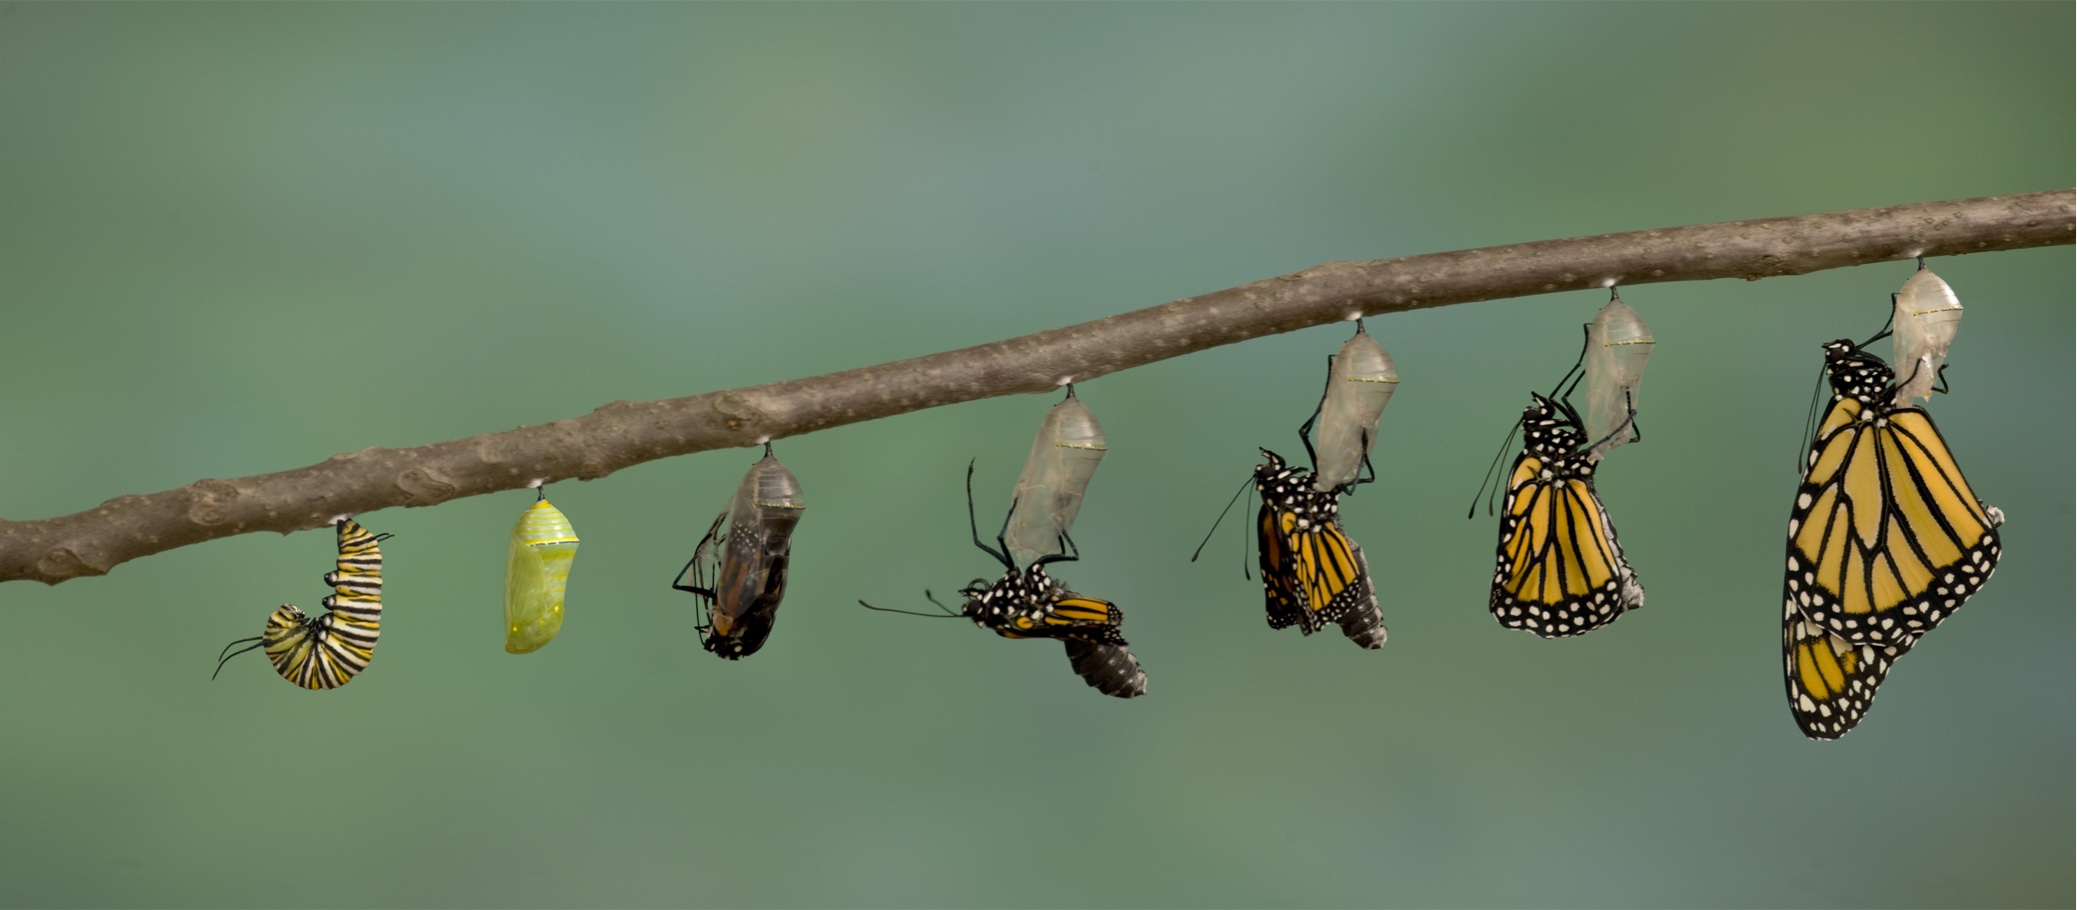 Stages of a caterpillar becoming a butterfly